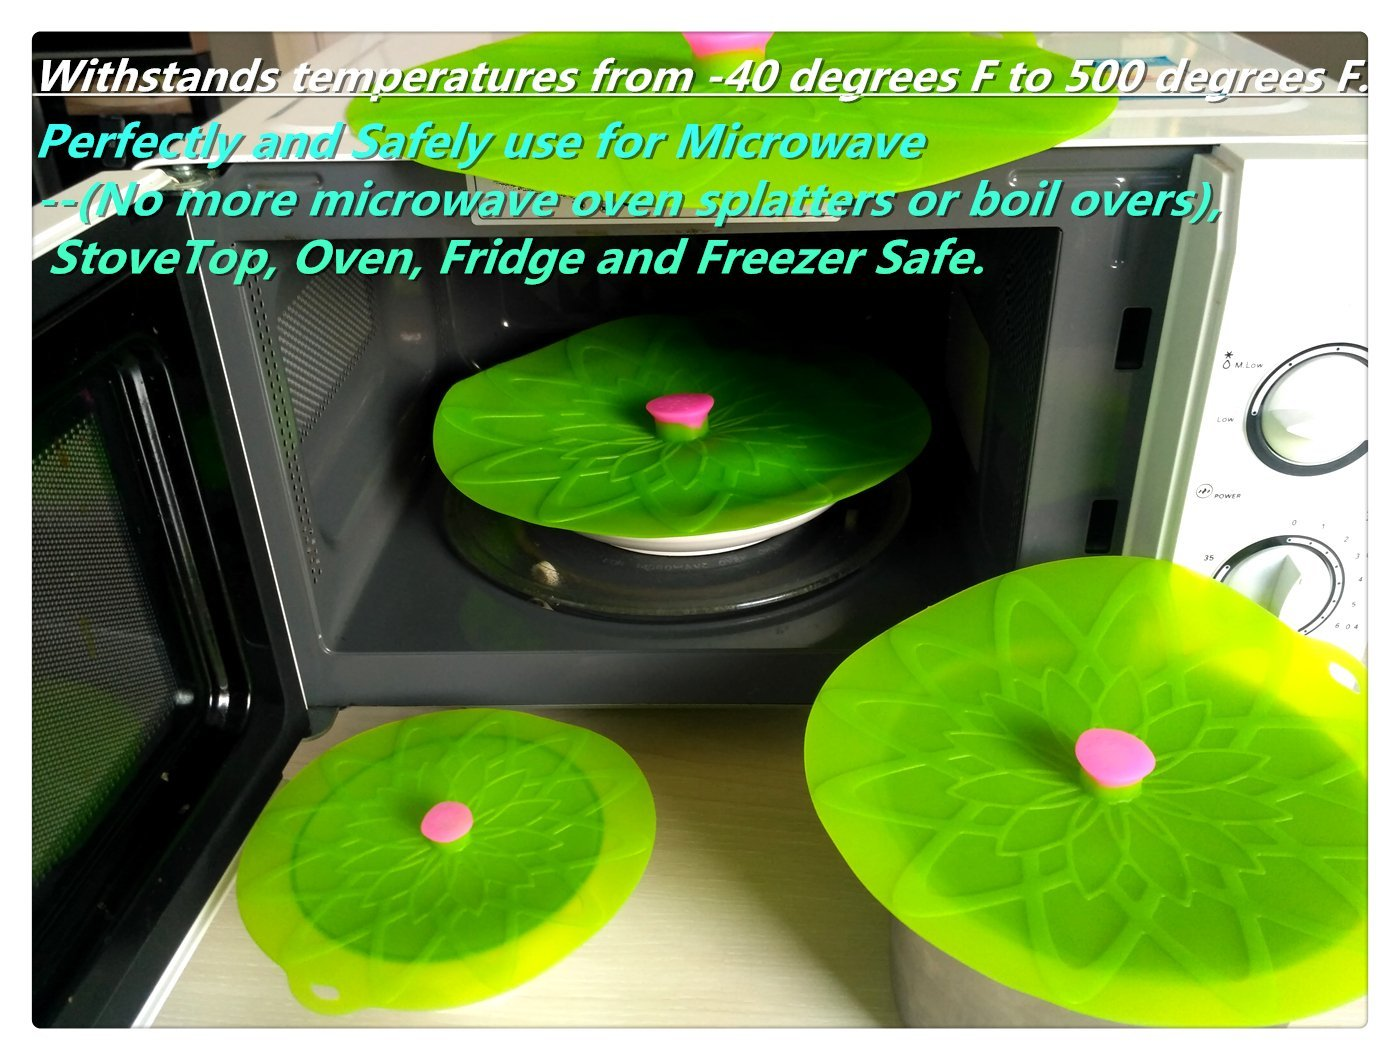 Kuke Silicone Suction Lids Set of 3 Silicone Bowl Lids Reusable Suction Seal Covers for Microwaves Bowls Pots Cups Food Cover (Green) by Kuke (Image #3)